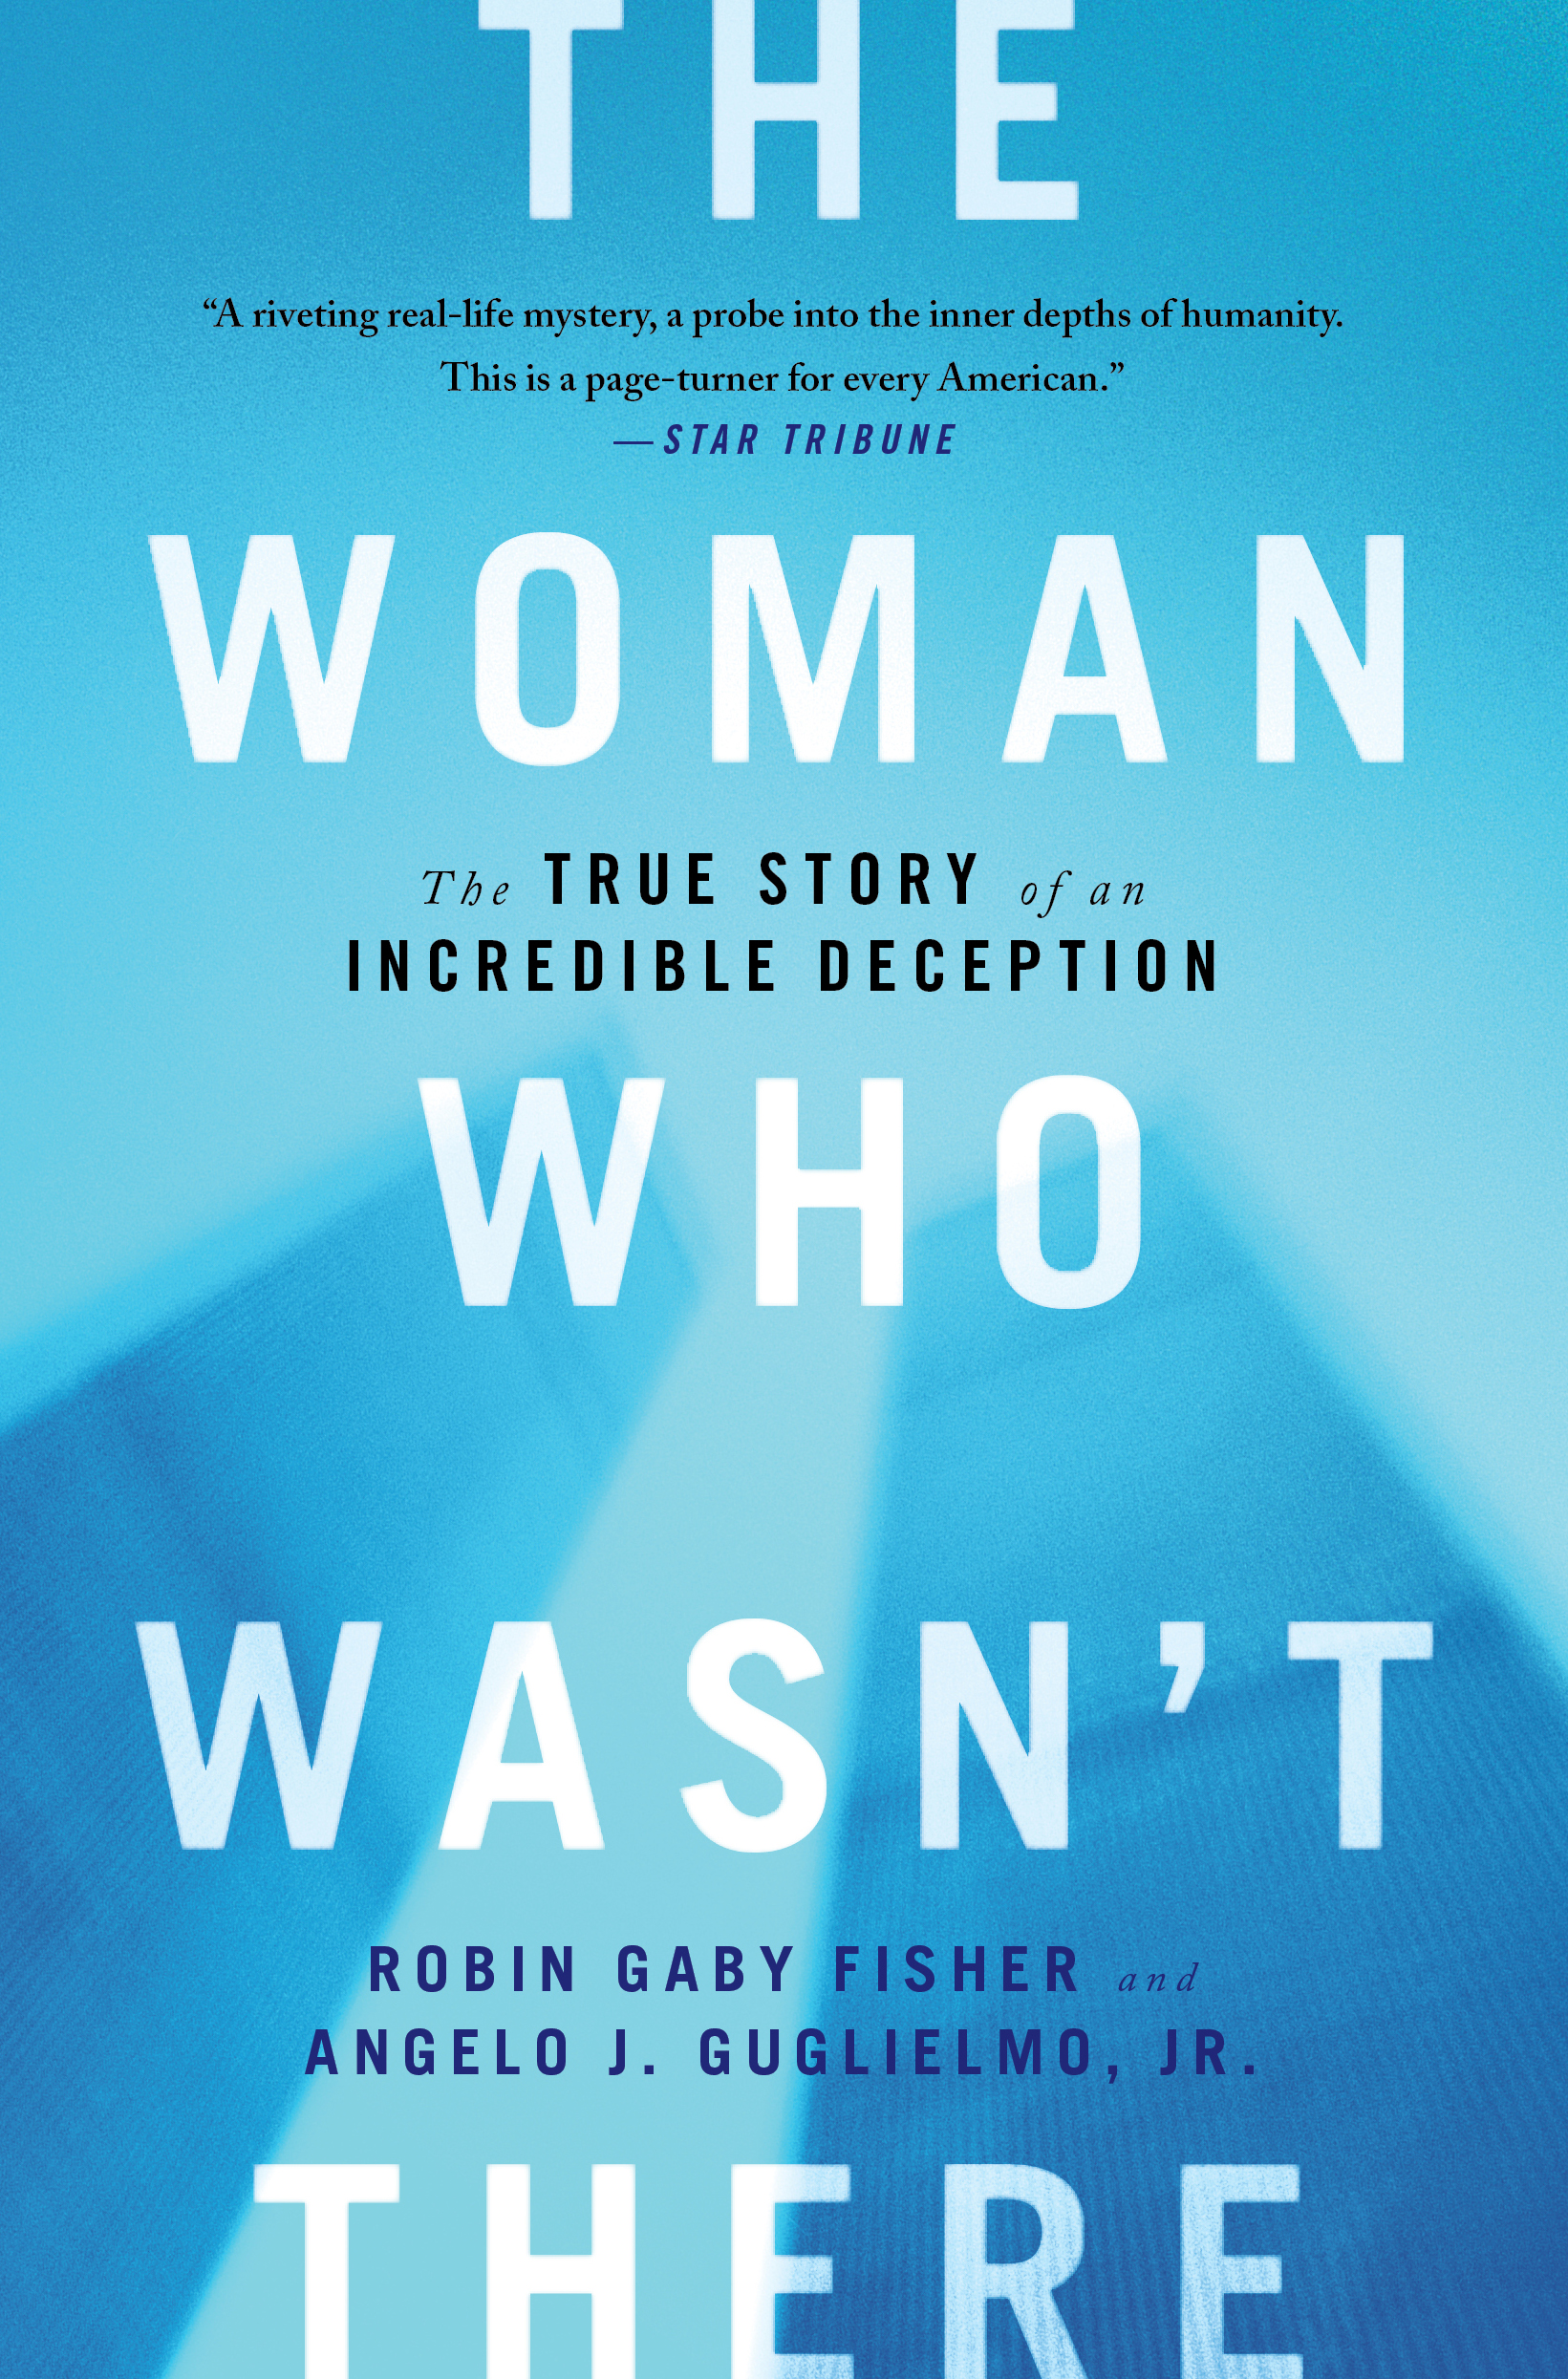 The True Story Of An Incredible Deception The Woman Who Wasn't There